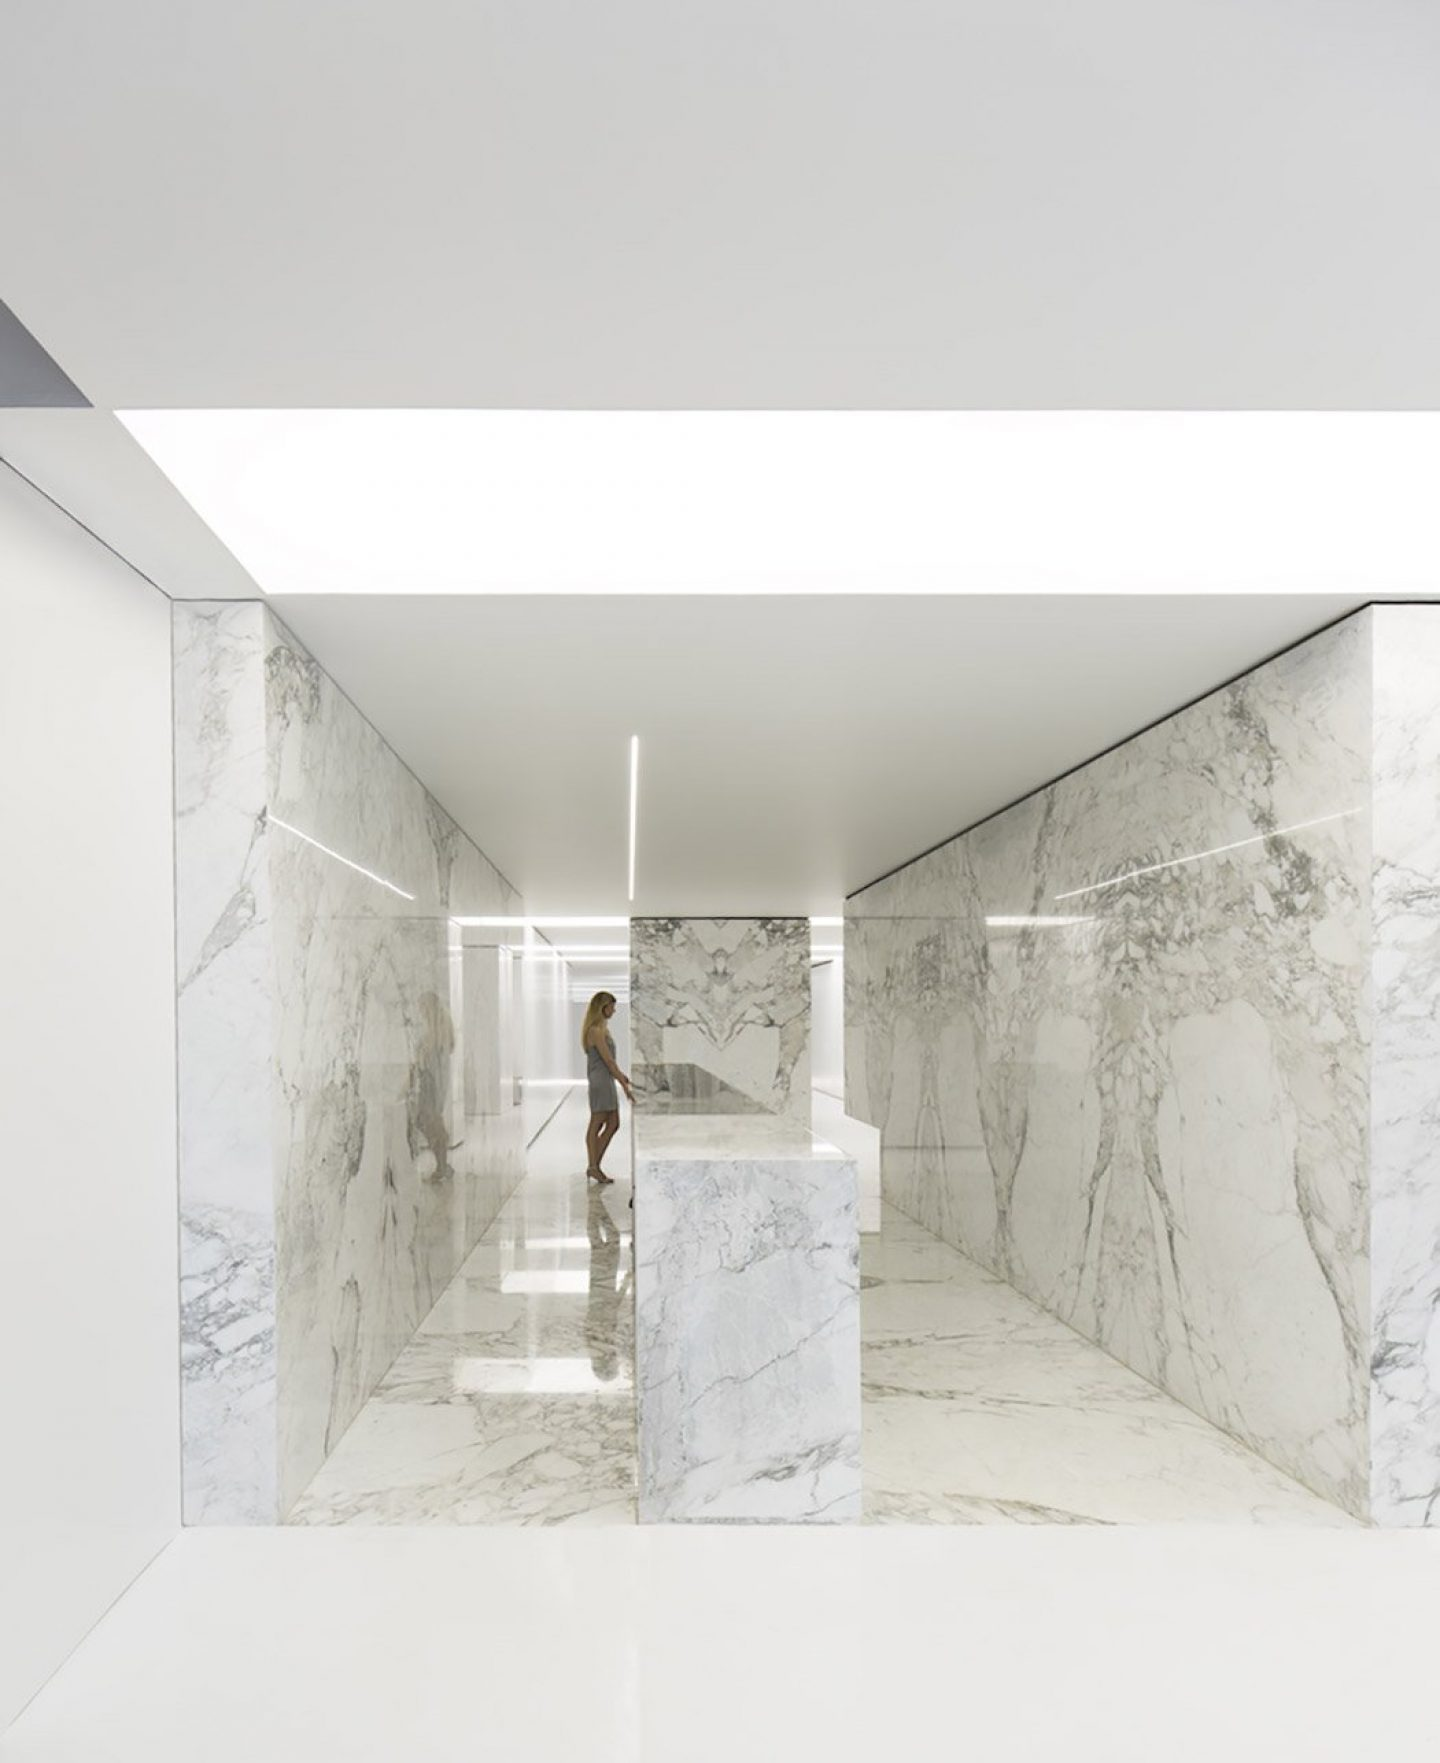 iGNANT_Architecture_PETRA_The_Stone_Atelier_Fran_Silvestre_Arquitectos_11